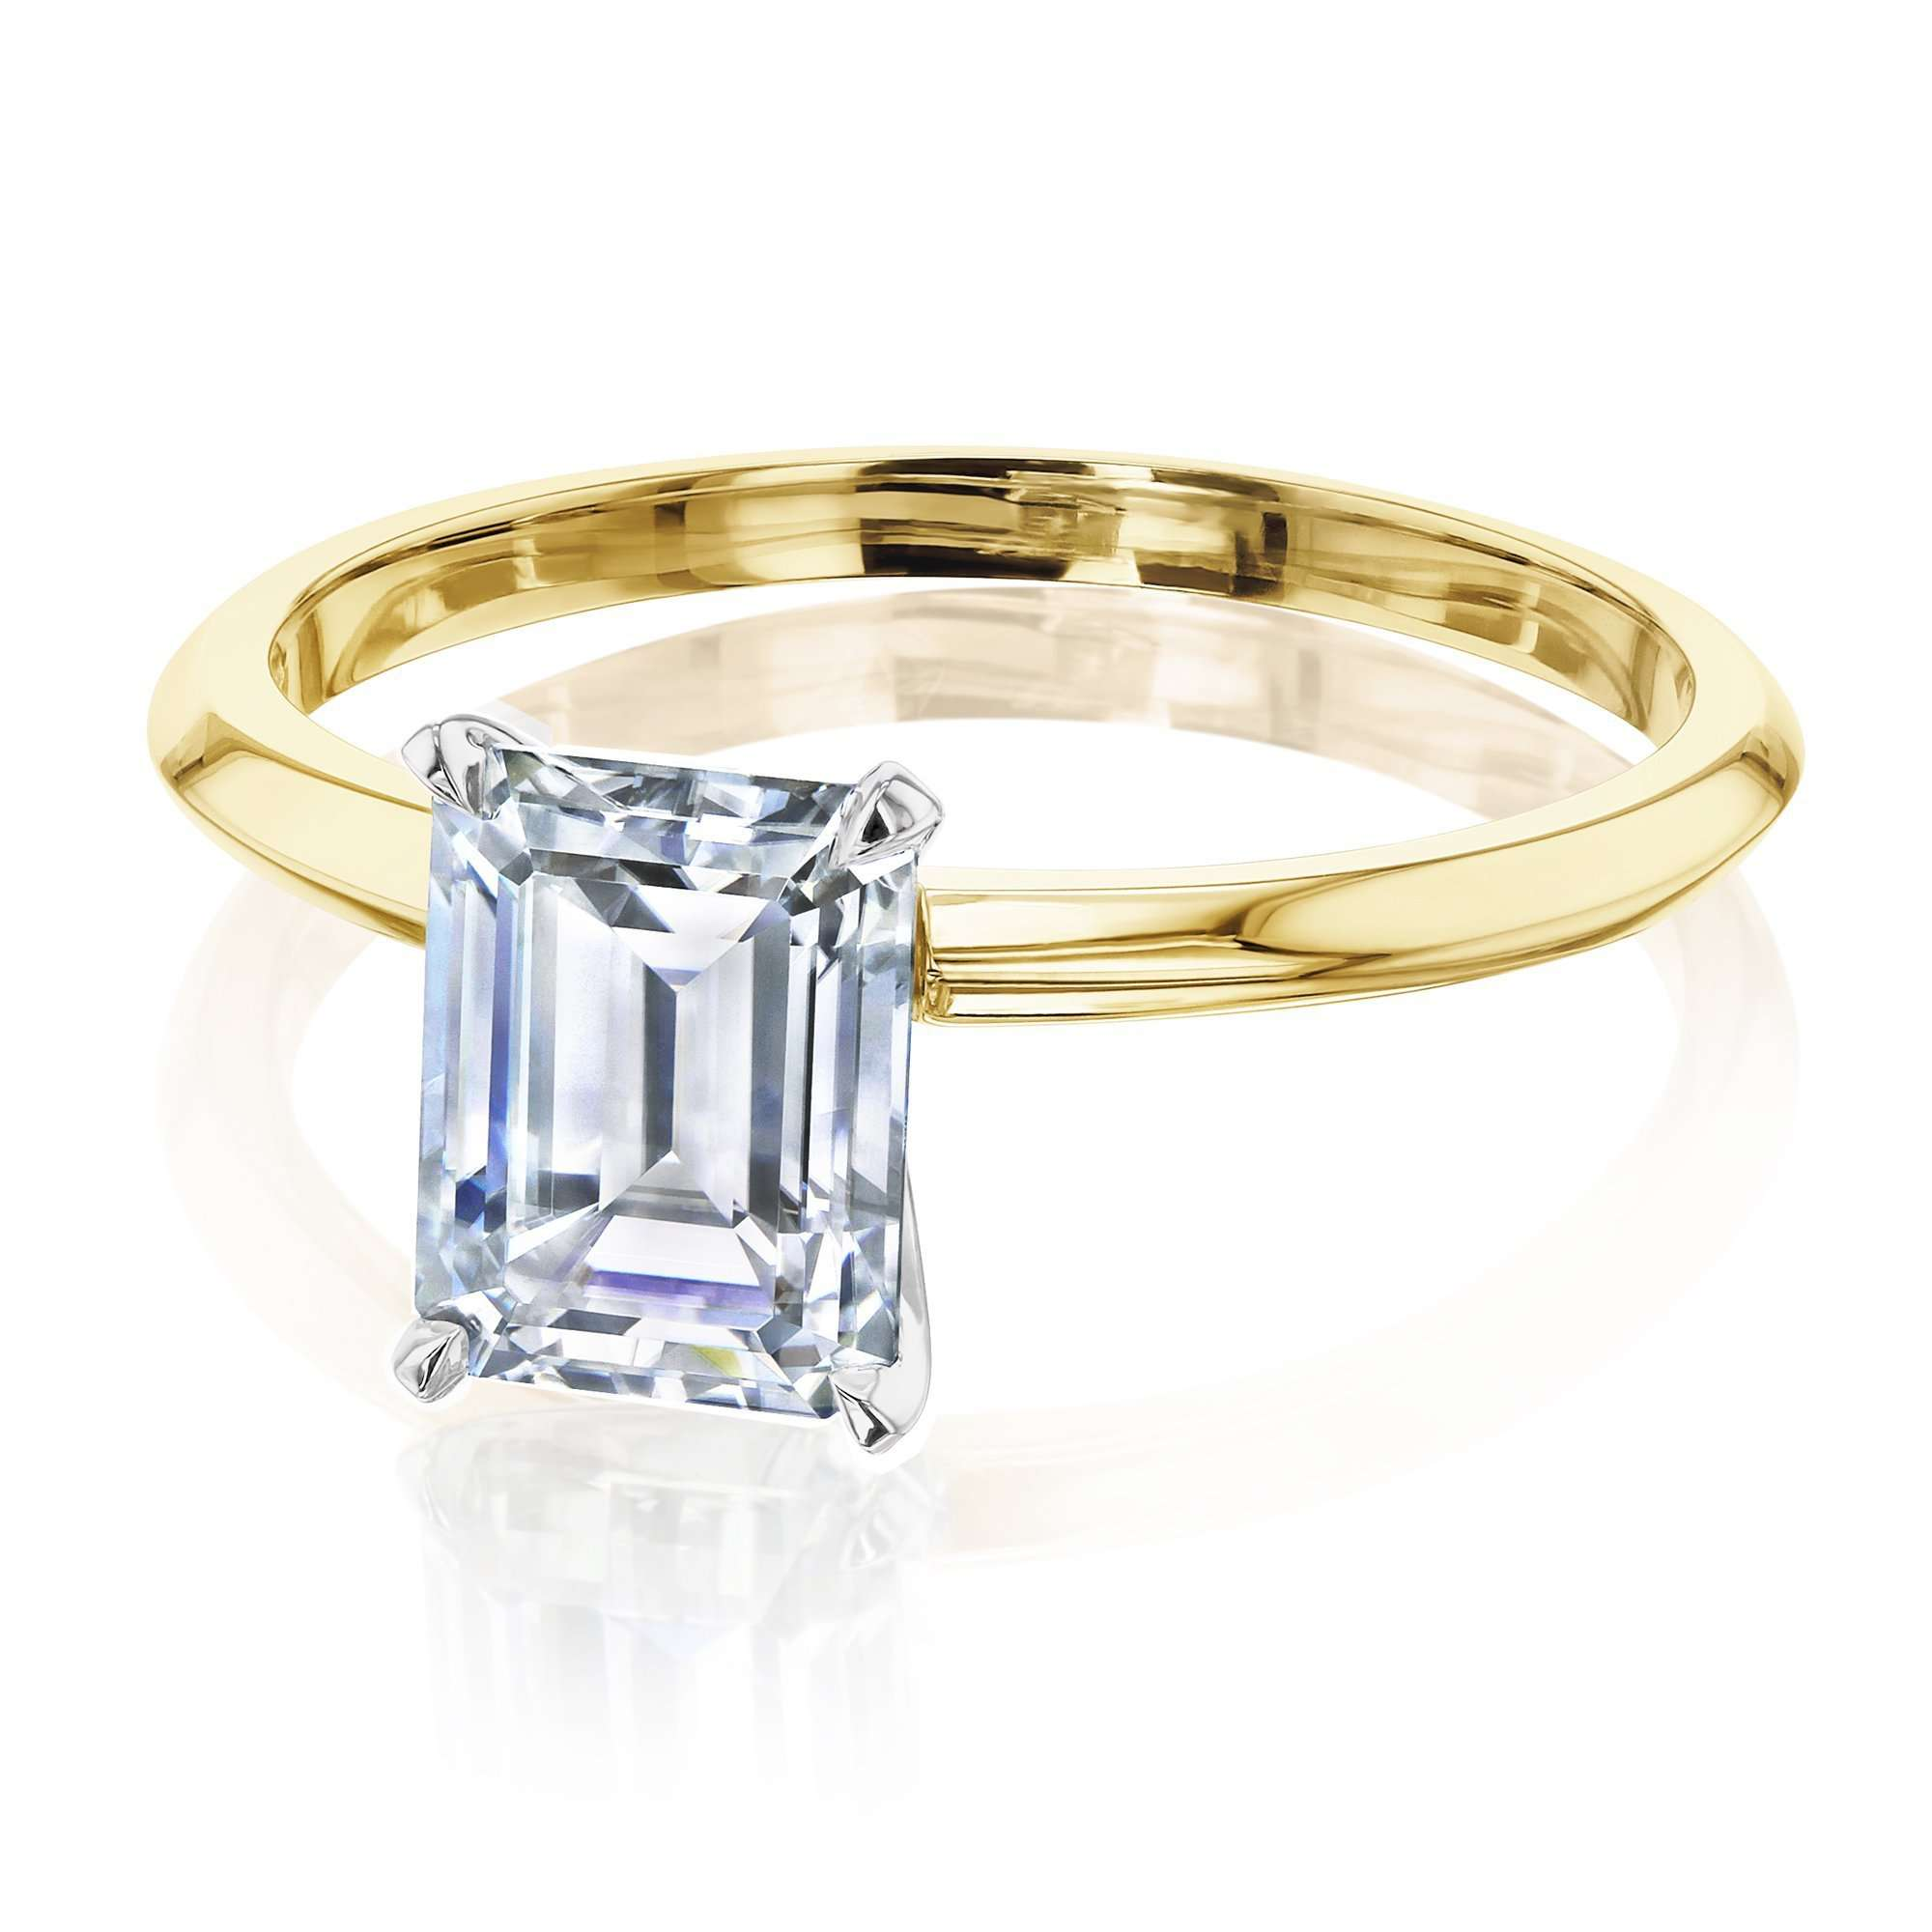 Discounts 1.75ct Emerald Moissanite Solitaire Ring - yellow-gold 10.0 Kobelli F-G